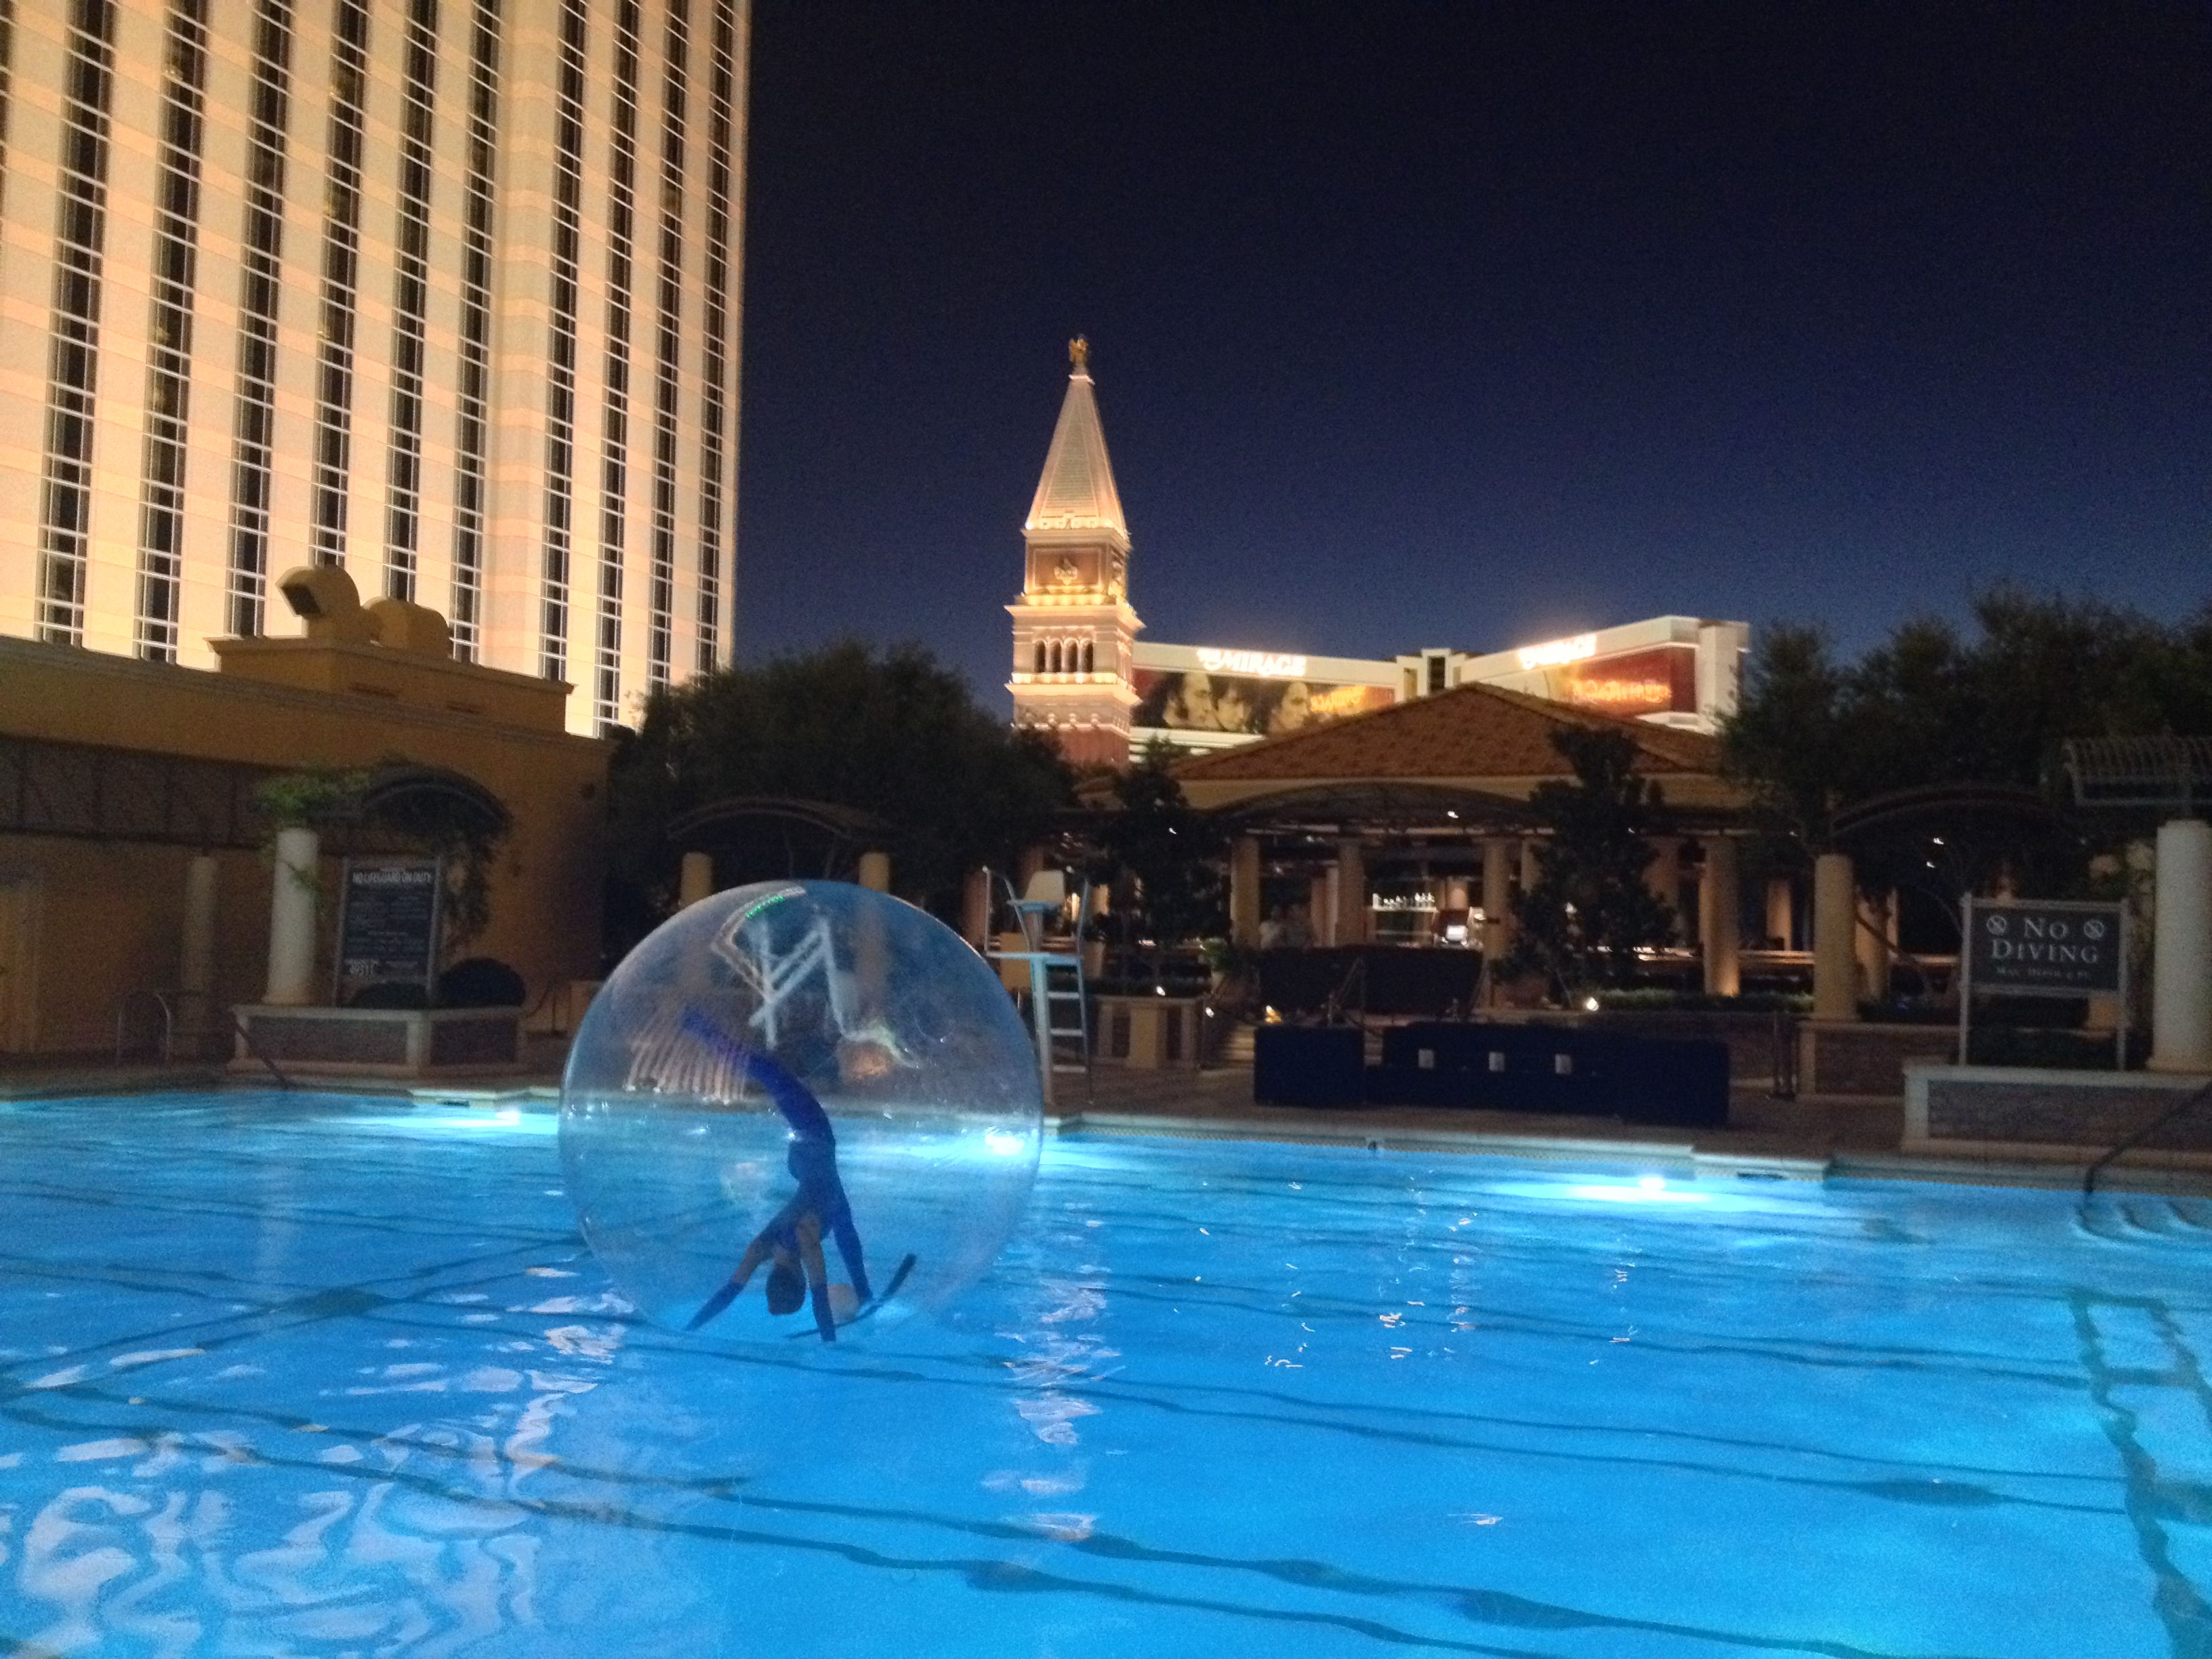 Venetian Hotel Pool Bubble Ballet Bubble Girls Pinterest Hotel Pool And Vegas